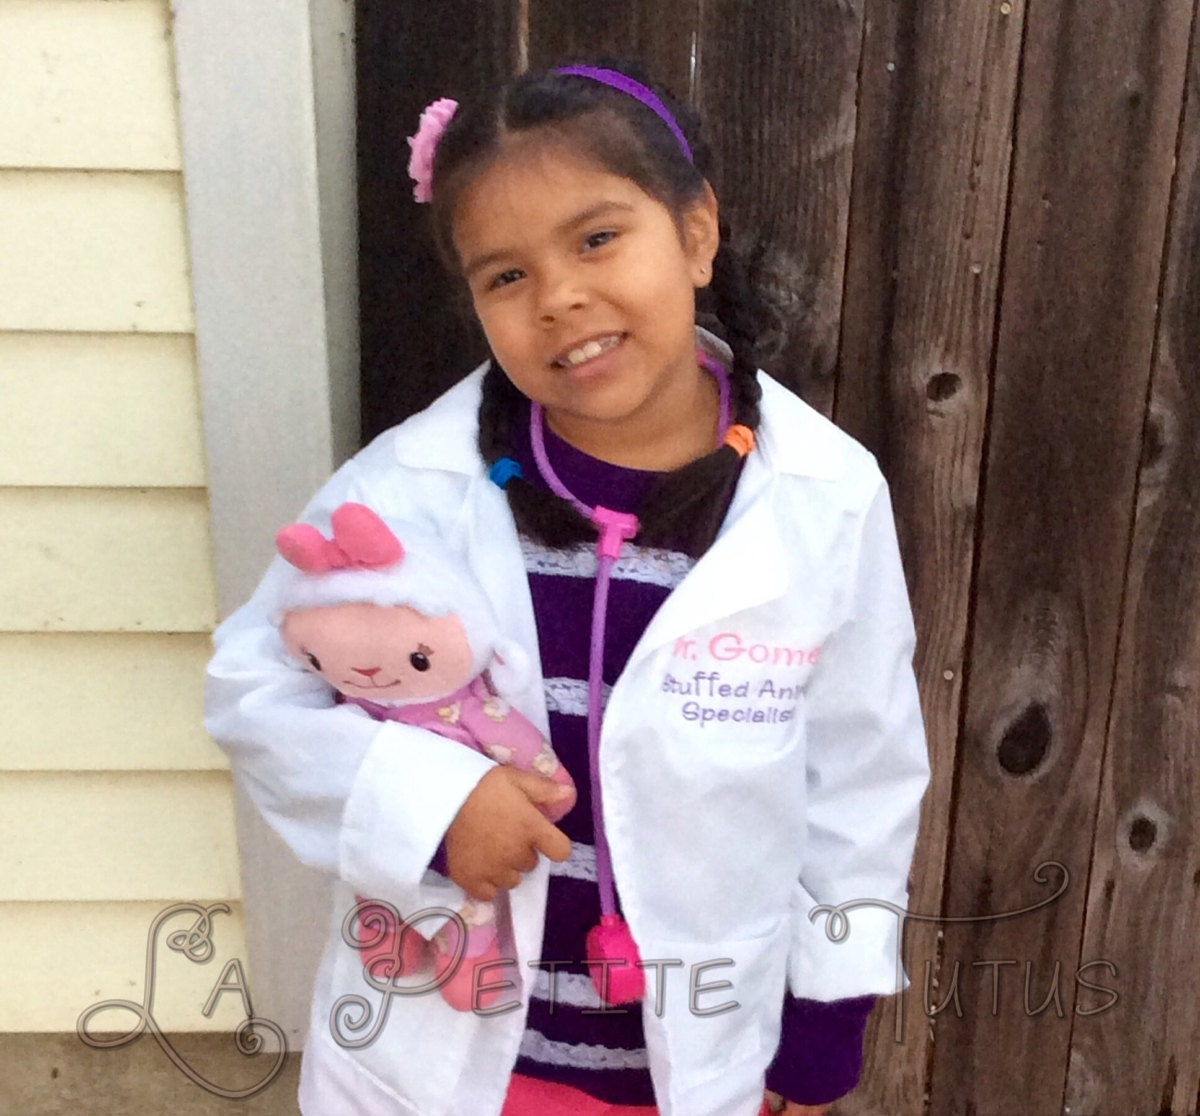 ?zoom  sc 1 st  Etsy & Doctor lab coat stuffed animal specialist personalized